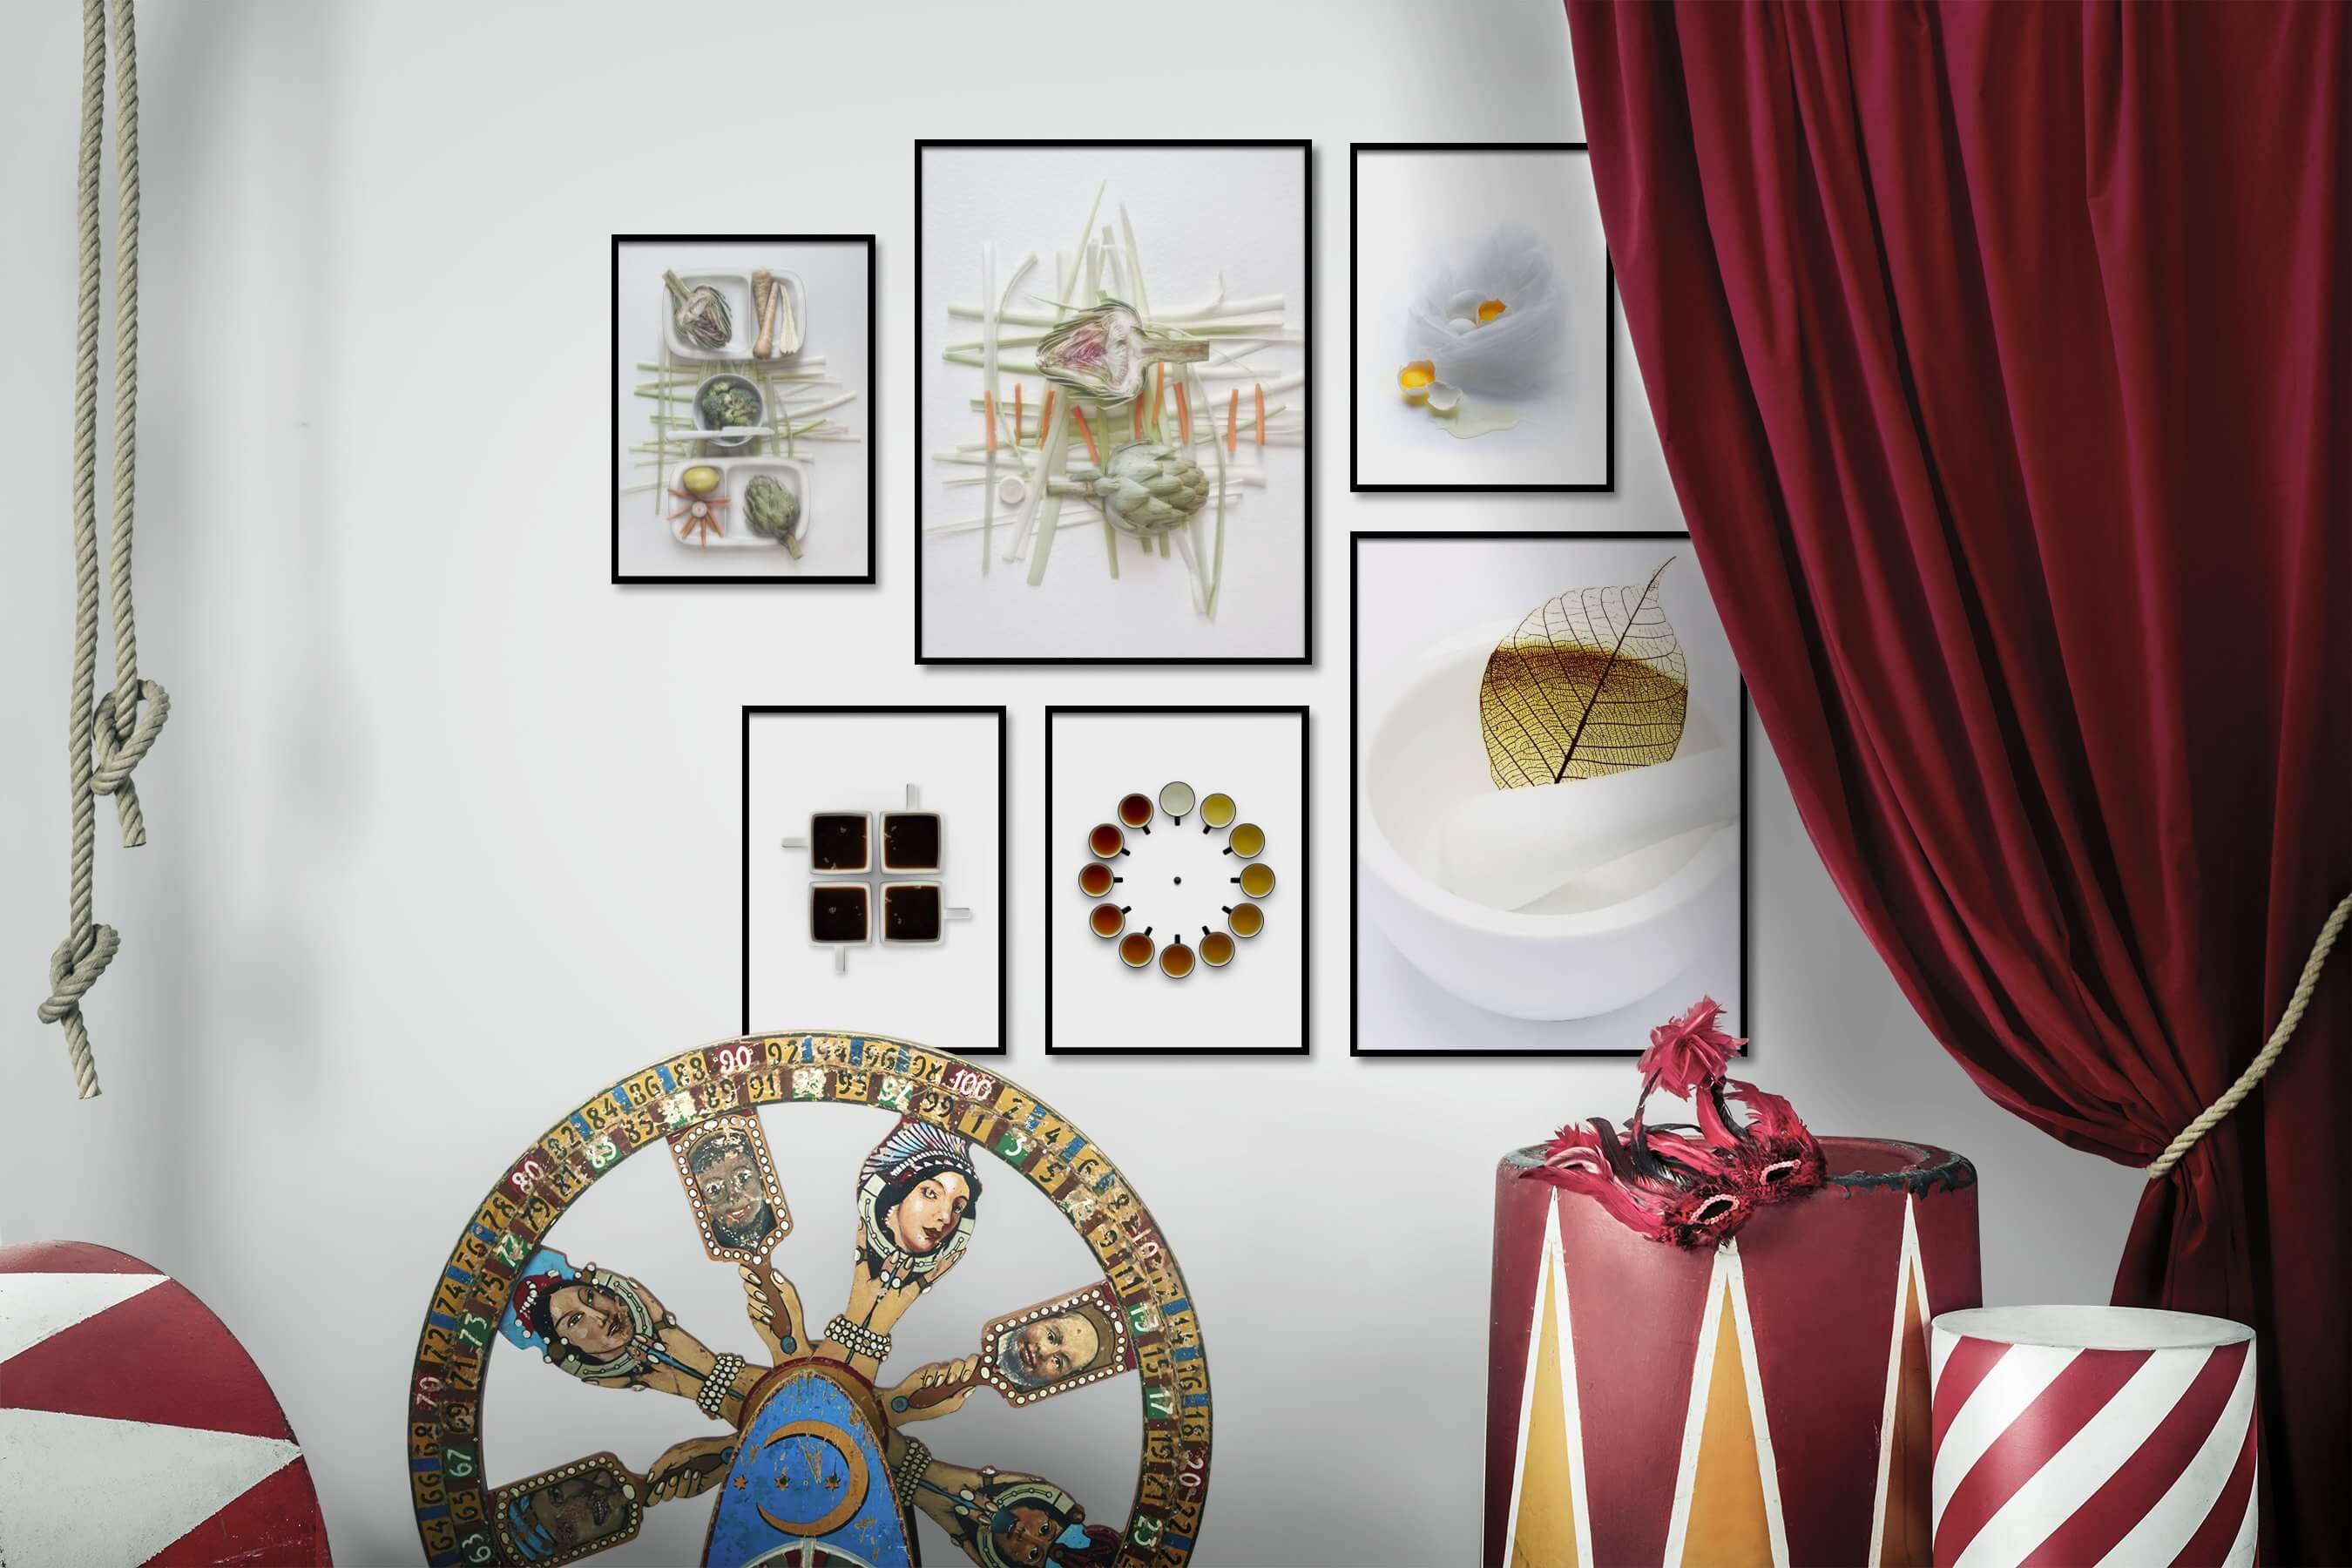 Gallery wall idea with six framed pictures arranged on a wall depicting Bright Tones, For the Moderate, Flowers & Plants, and For the Minimalist